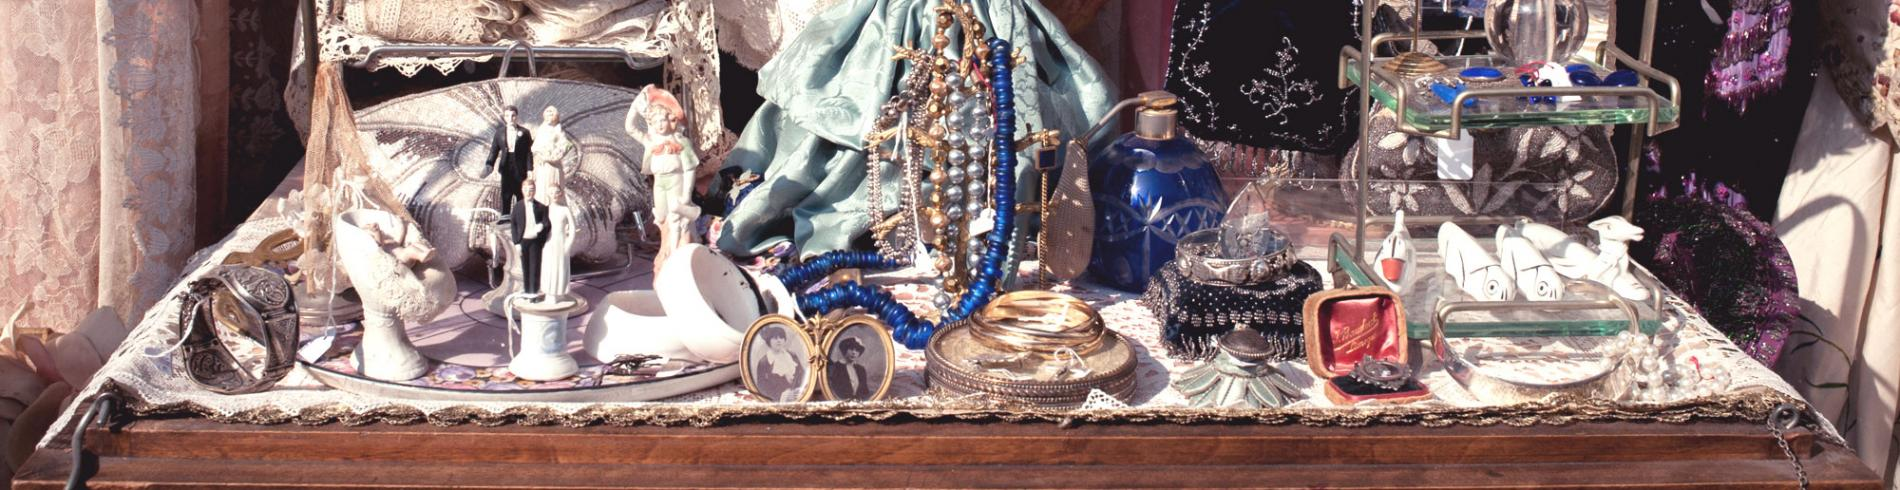 Table with piles of jewellery and little ornaments